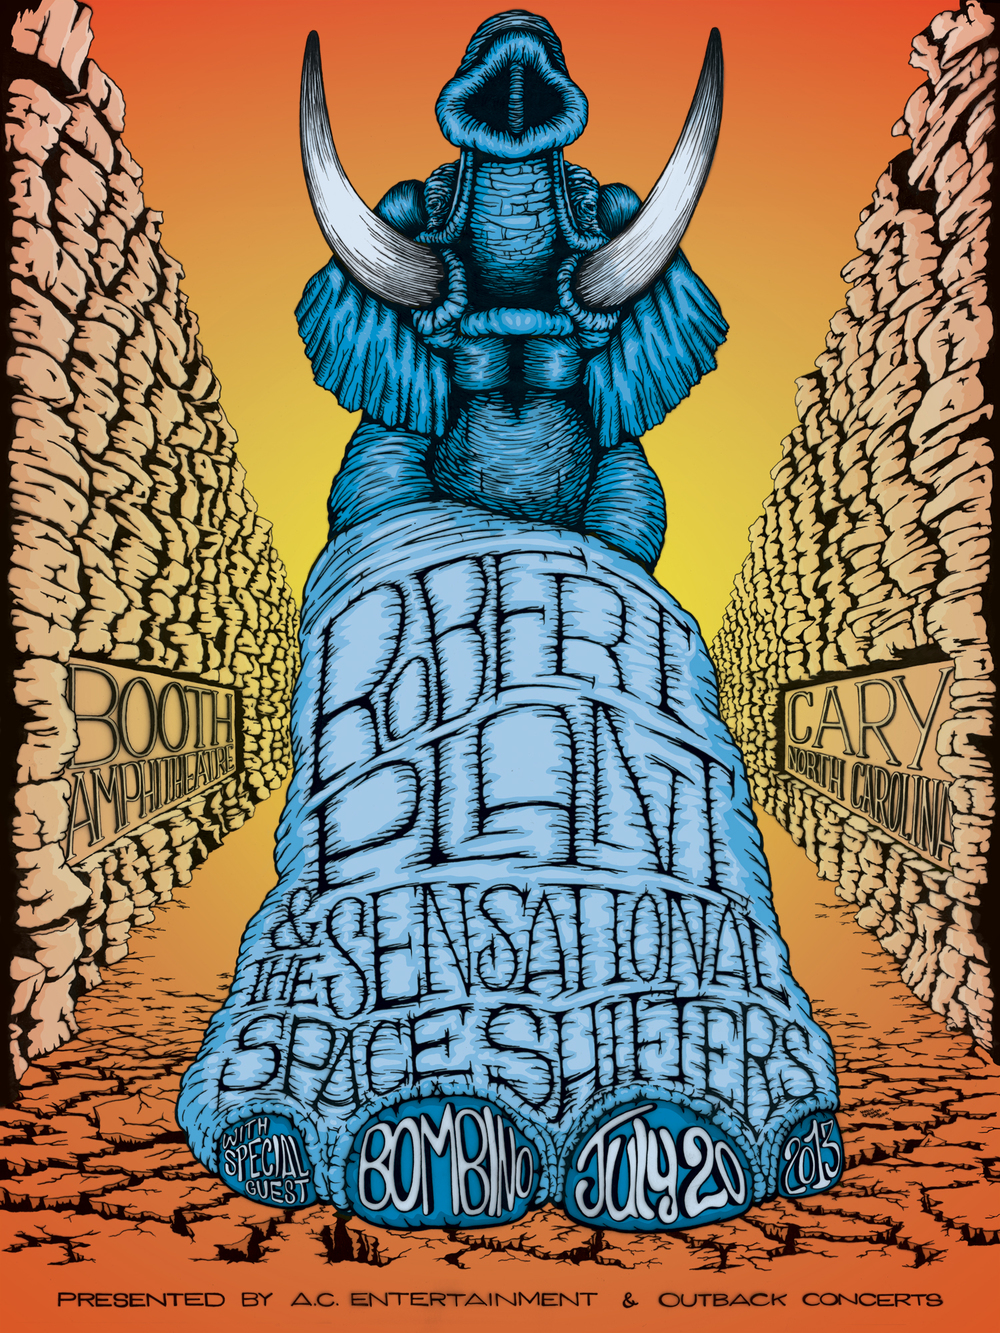 "ROBERT PLANT & THE SENSATIONAL SPACE SHIFTERS POSTER, PEN & INK on VELLUM, 18"" x 24""  [PRINTS AVAILABLE]"